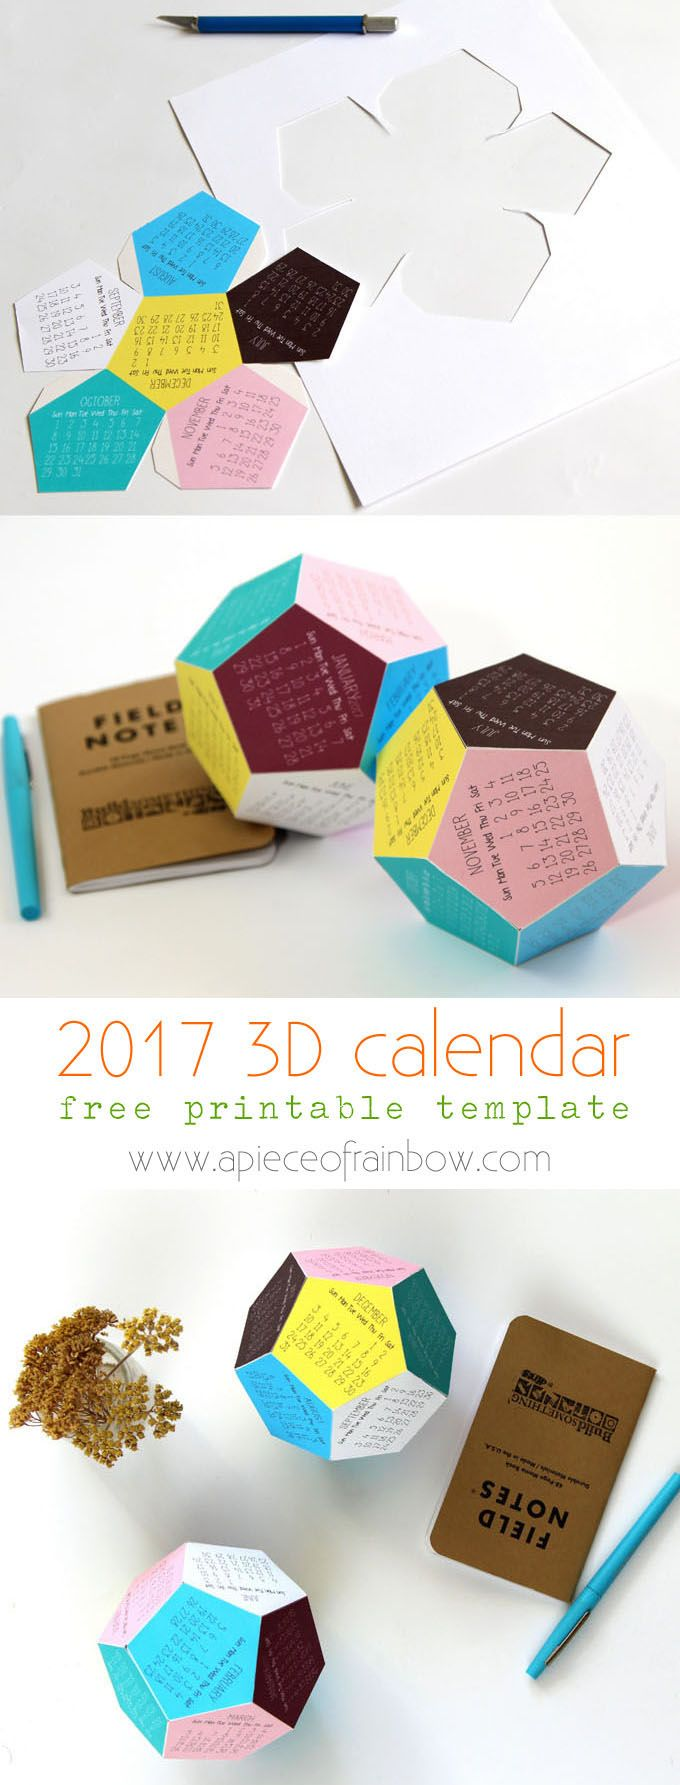 Delighted 1 Inch Hexagon Template Thin 10 Envelope Template Indesign Regular 10 Steps To Writing A Resume 100 Free Resume Youthful 100 Square Pool Template Fresh1300 Resume Government Samples Selection Criteria 2017 3D Printable Calendar | (2017), Calendar And Cutting Files